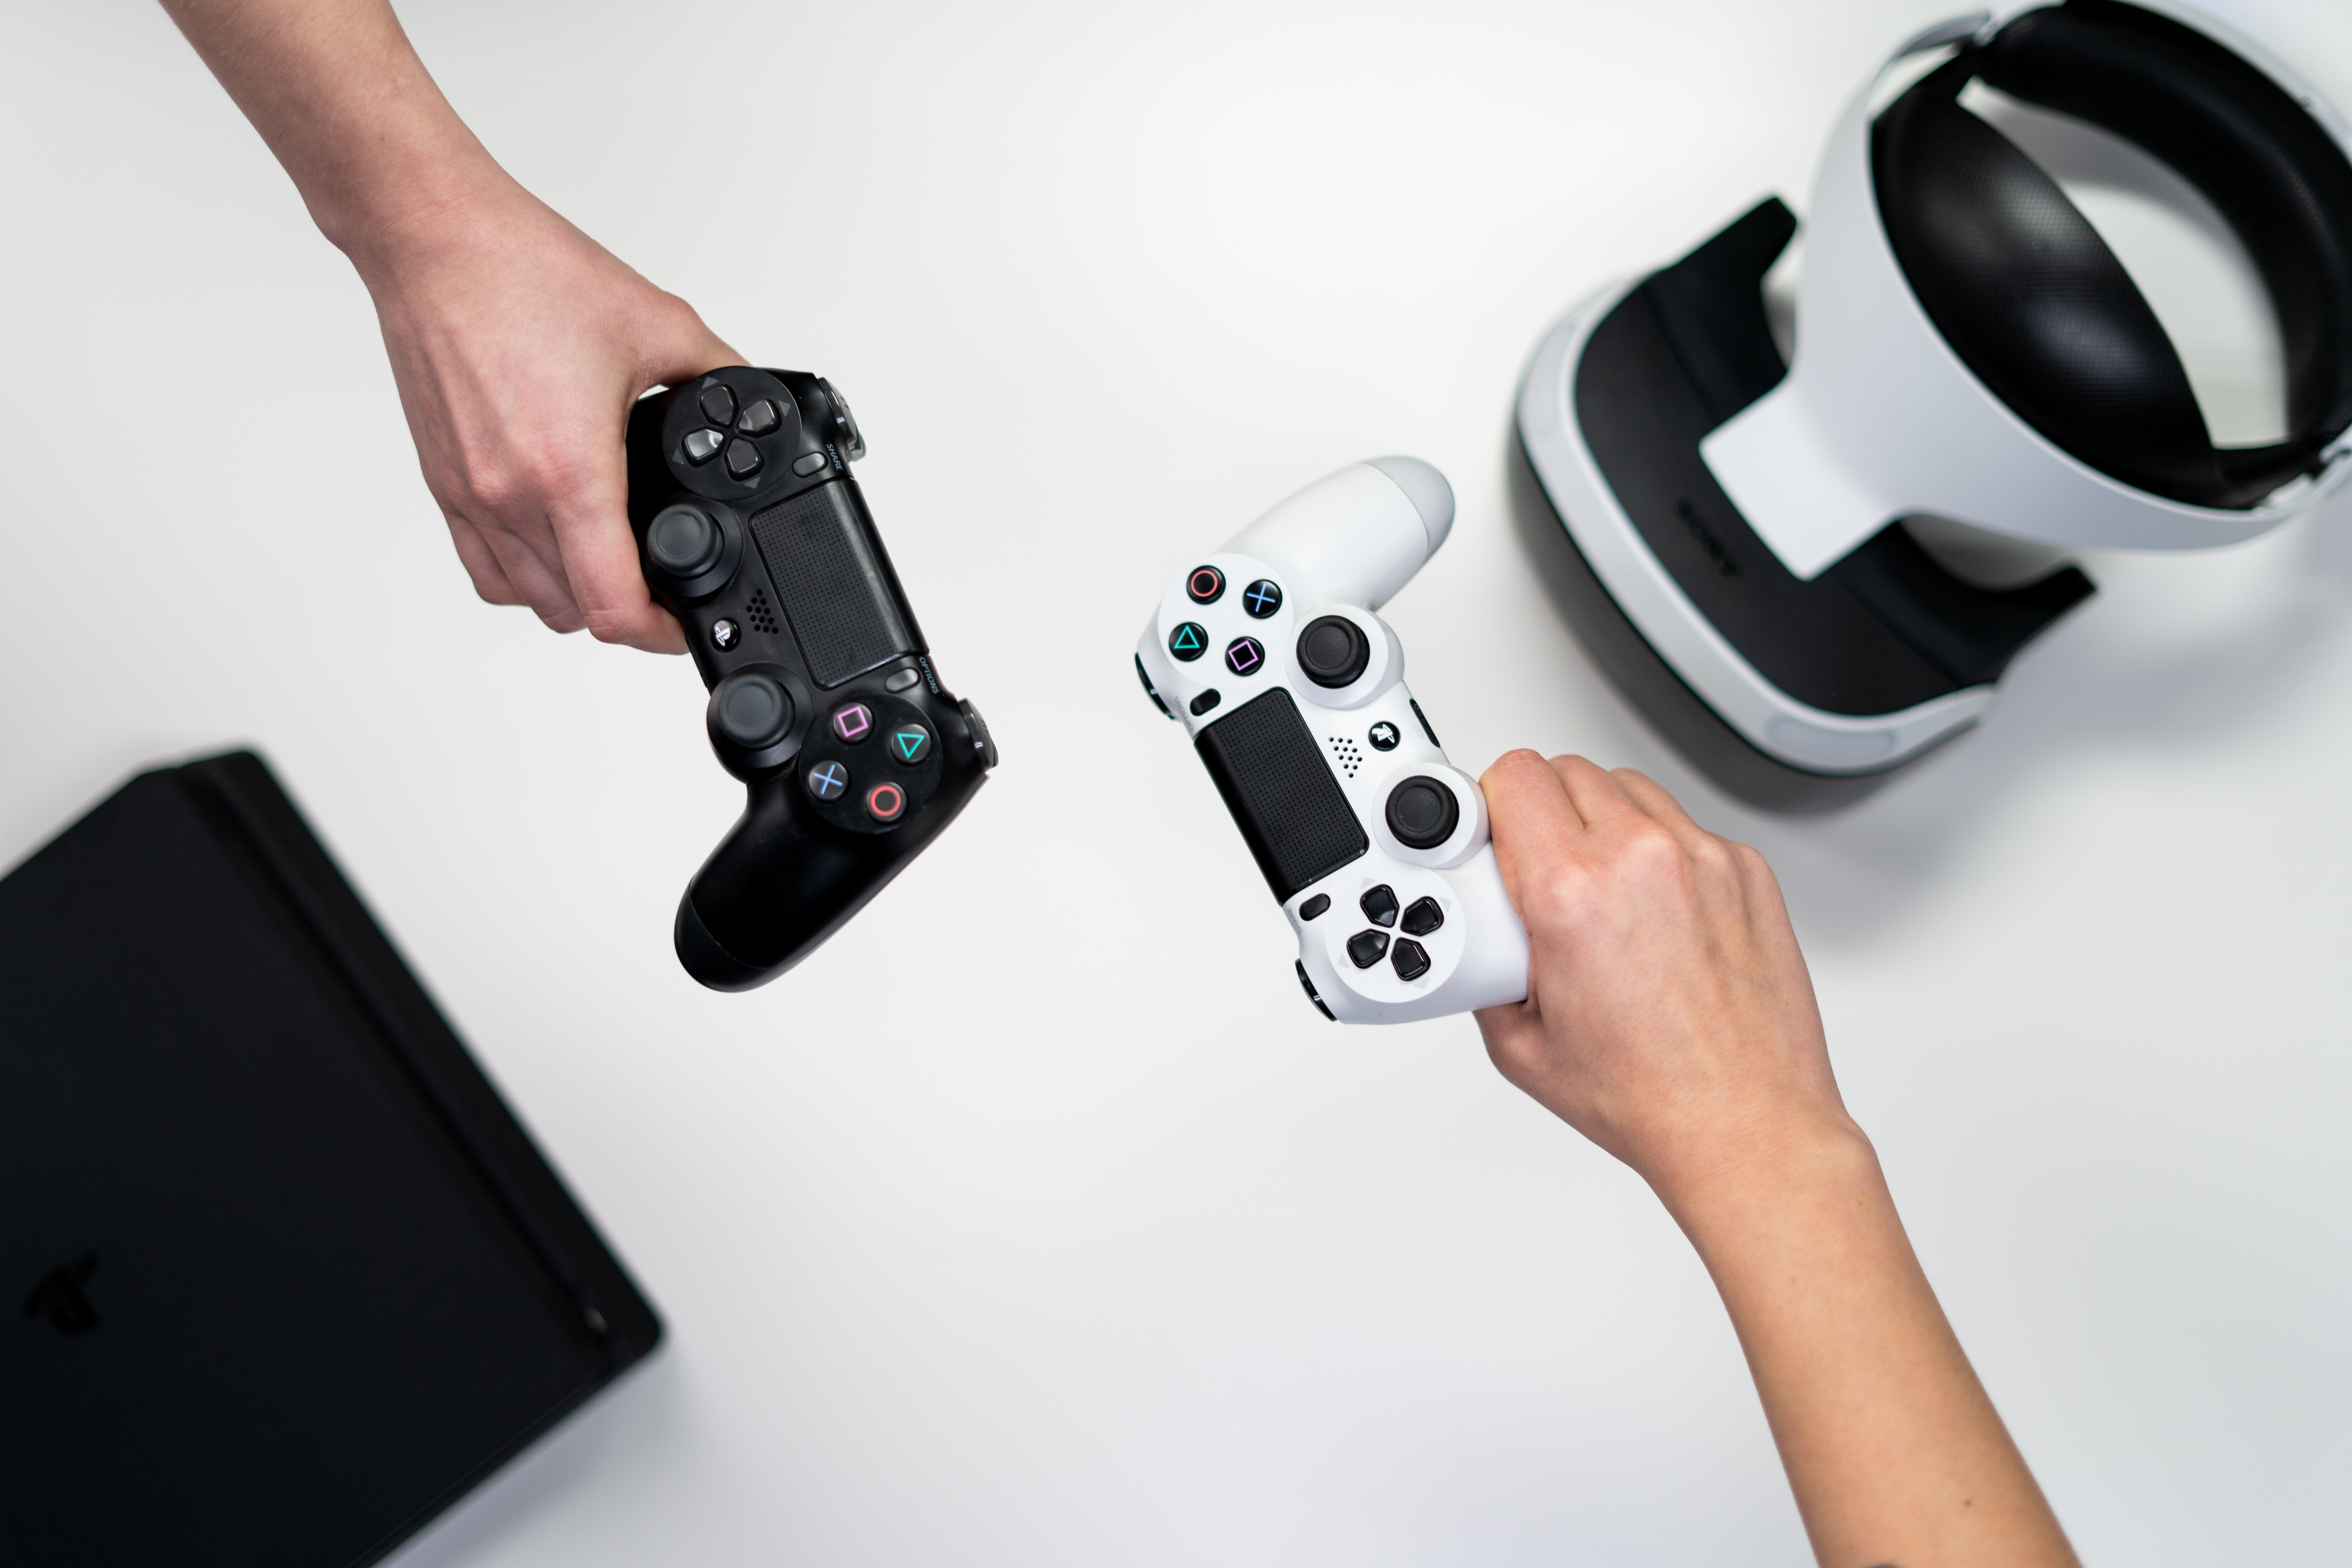 Photo of two video game controllers courtesy of Pexel.